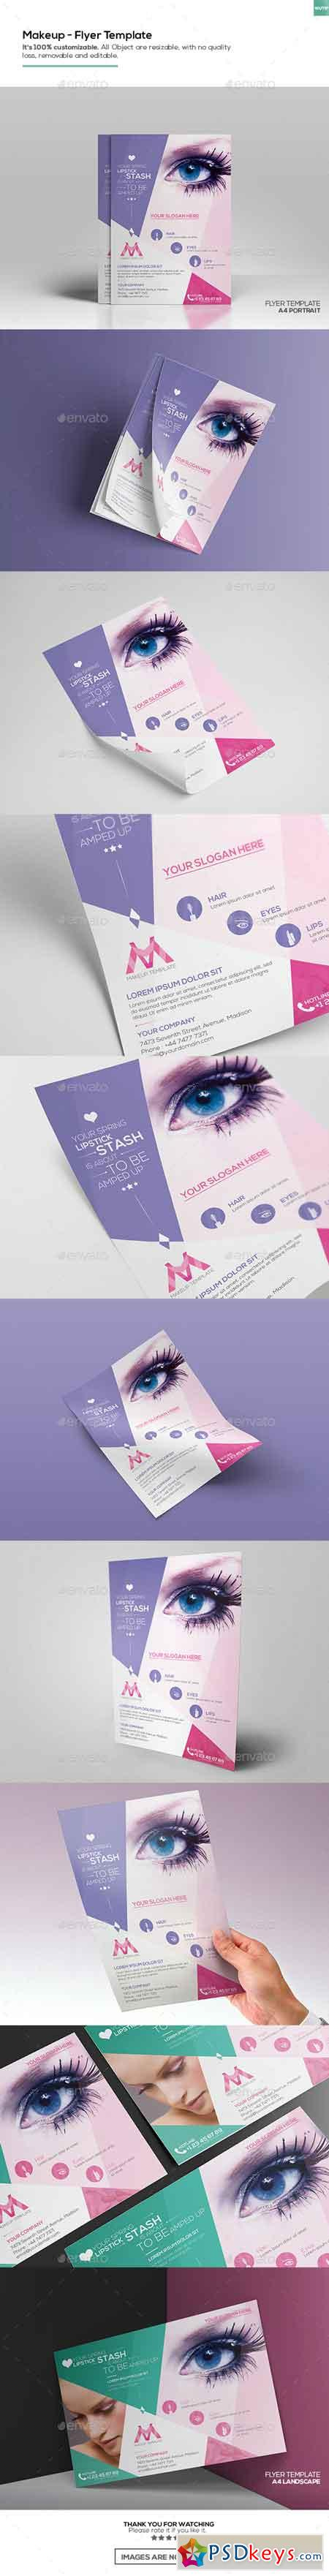 Makeup Flyer Template 16244307 Free Download Photoshop Vector